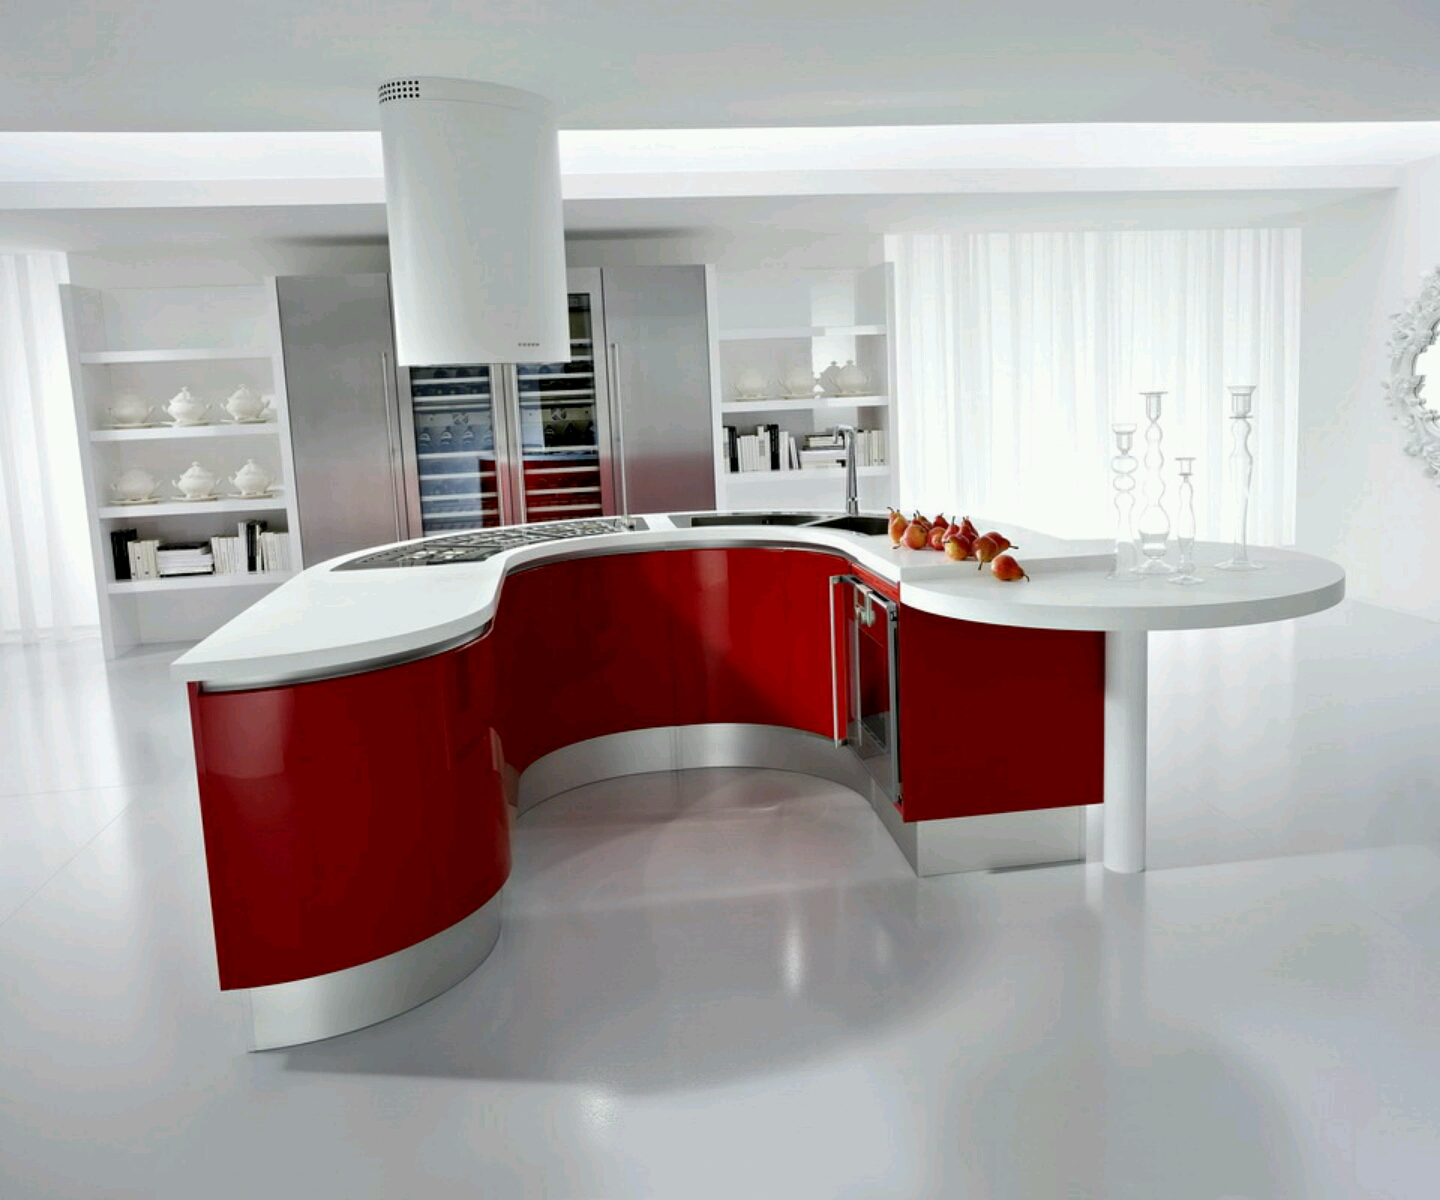 Modern kitchen cabinets designs ideas furniture gallery New contemporary kitchen design